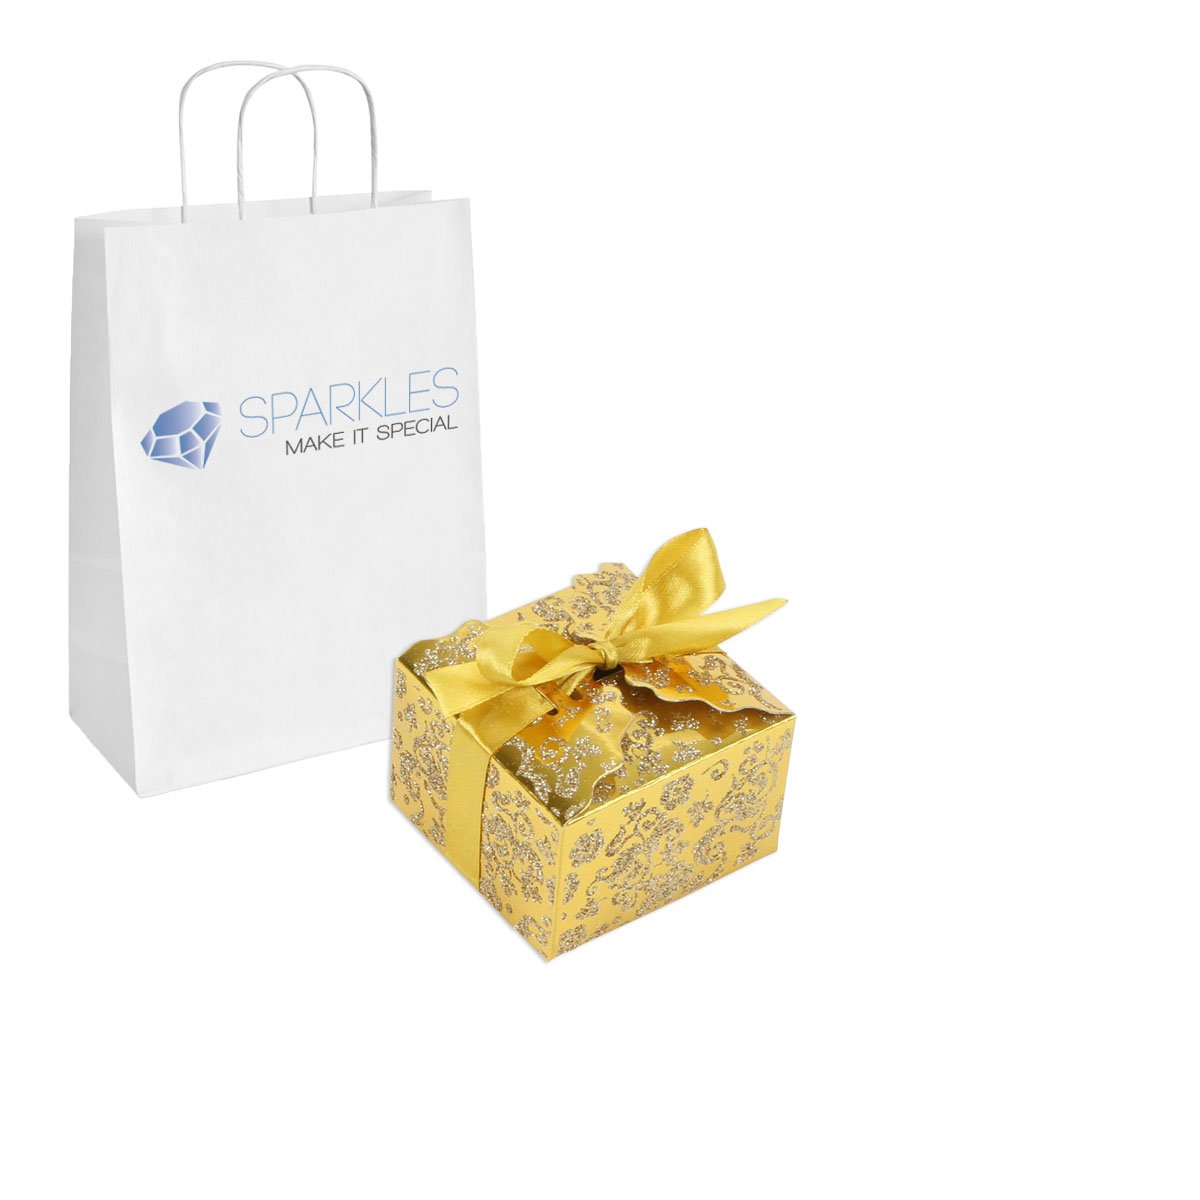 Sparkles Make It Special 100-pcs Medium Ribbon Favor Candy Boxes Wedding Gift Candy Boxes Mirror Gold